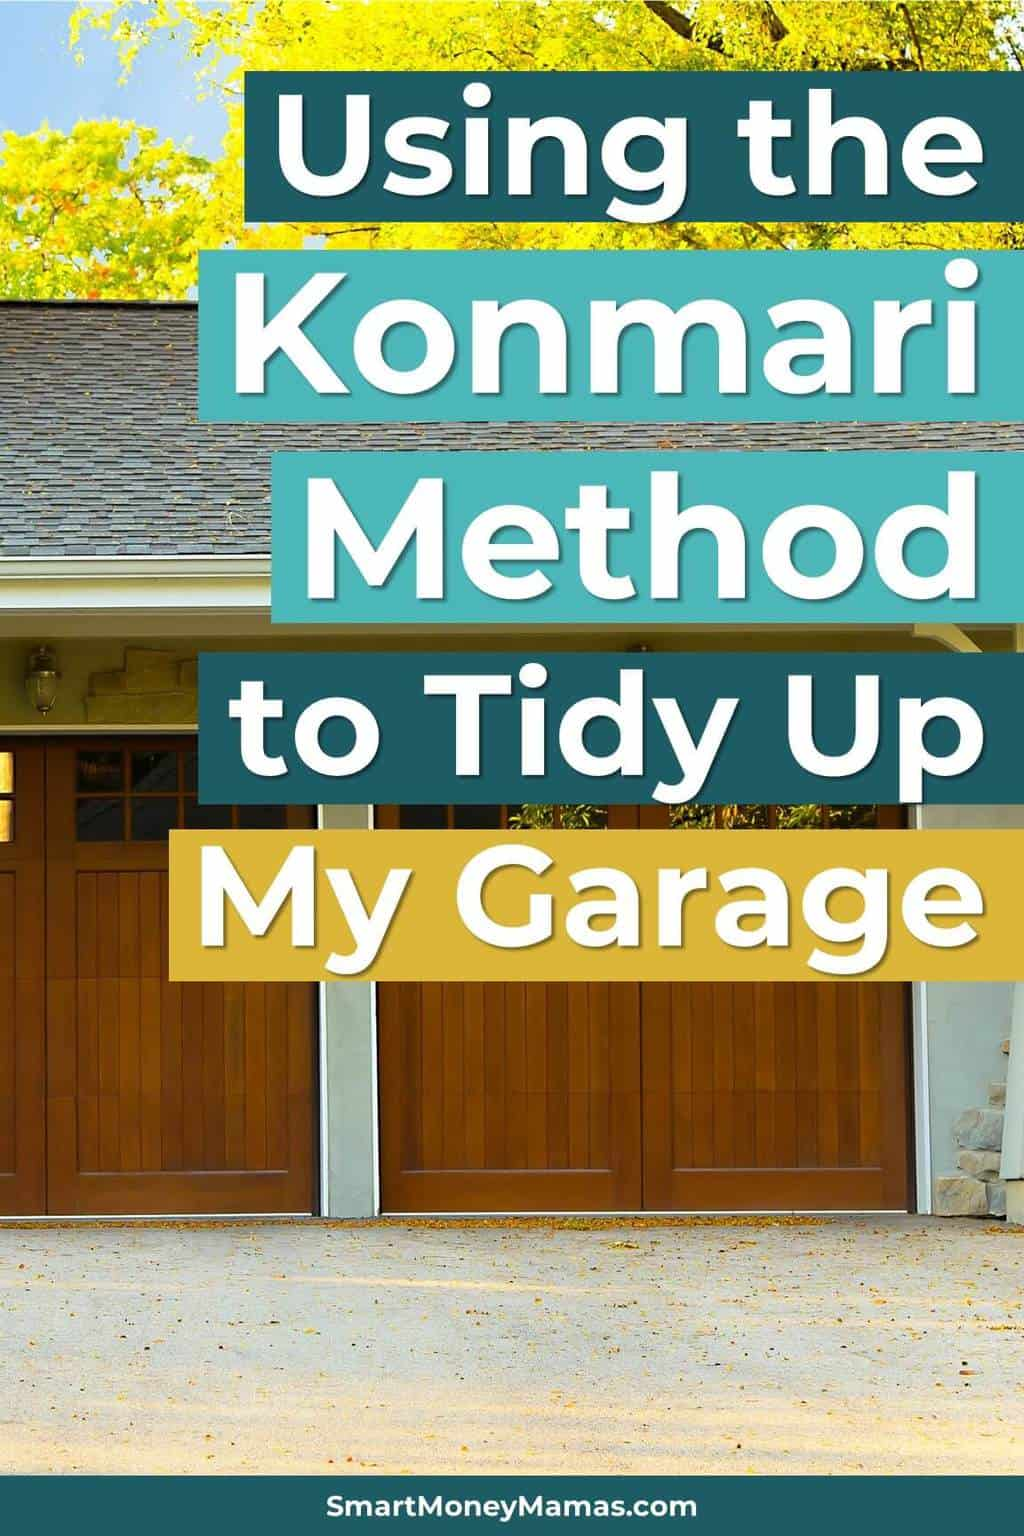 This was hilarious! Loved reading an inside look of a mom using the Marie Kondo decluttering method while balancing real life. Her garage looks so much better! #konmari #decluttering #MarieKondo #cleaninggarage #organization #smartmoneymamas